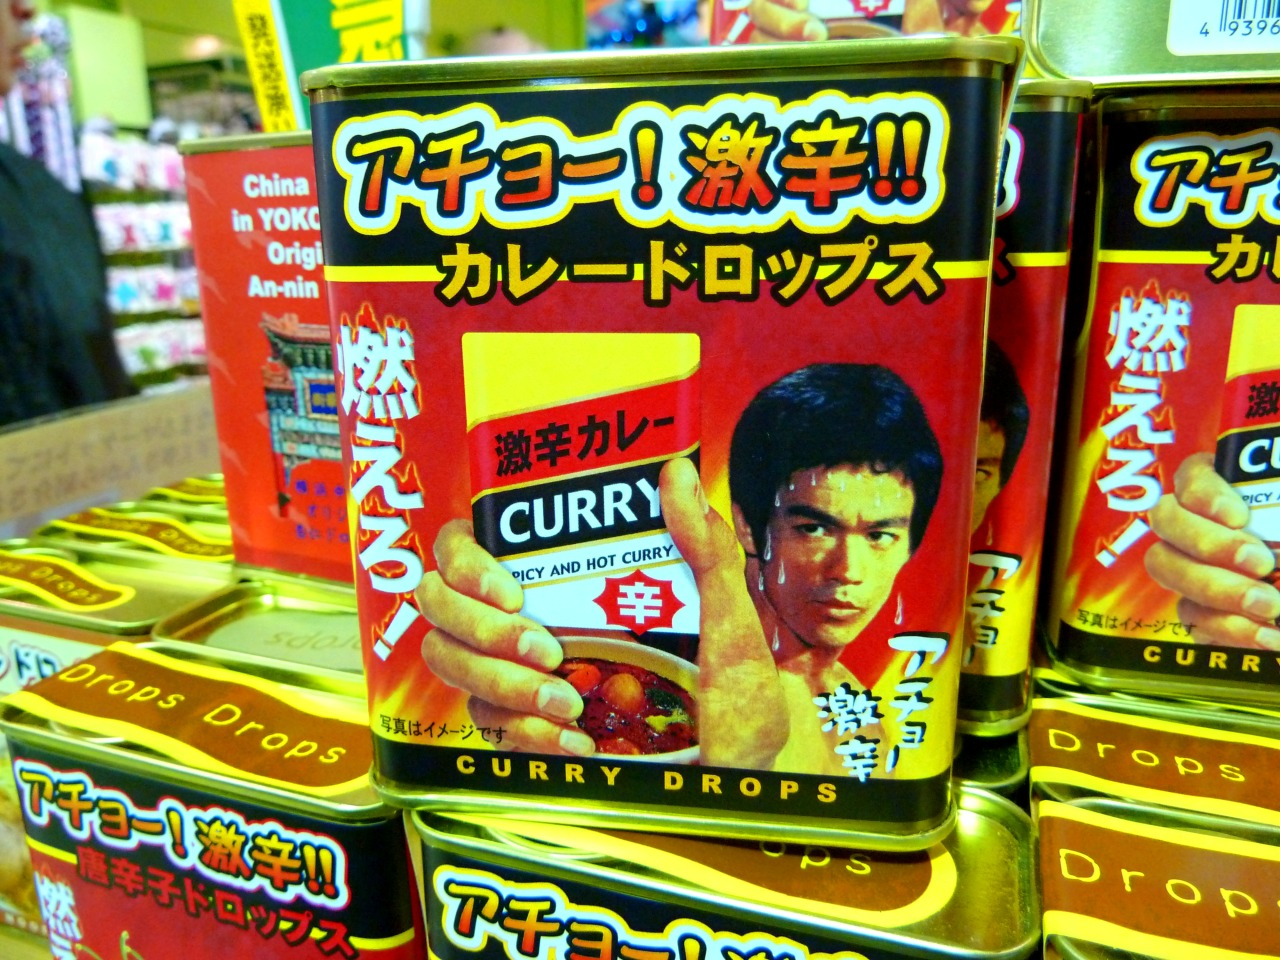 Curry Drops Bruce lee en vente dans le Chinatown de Yokohama